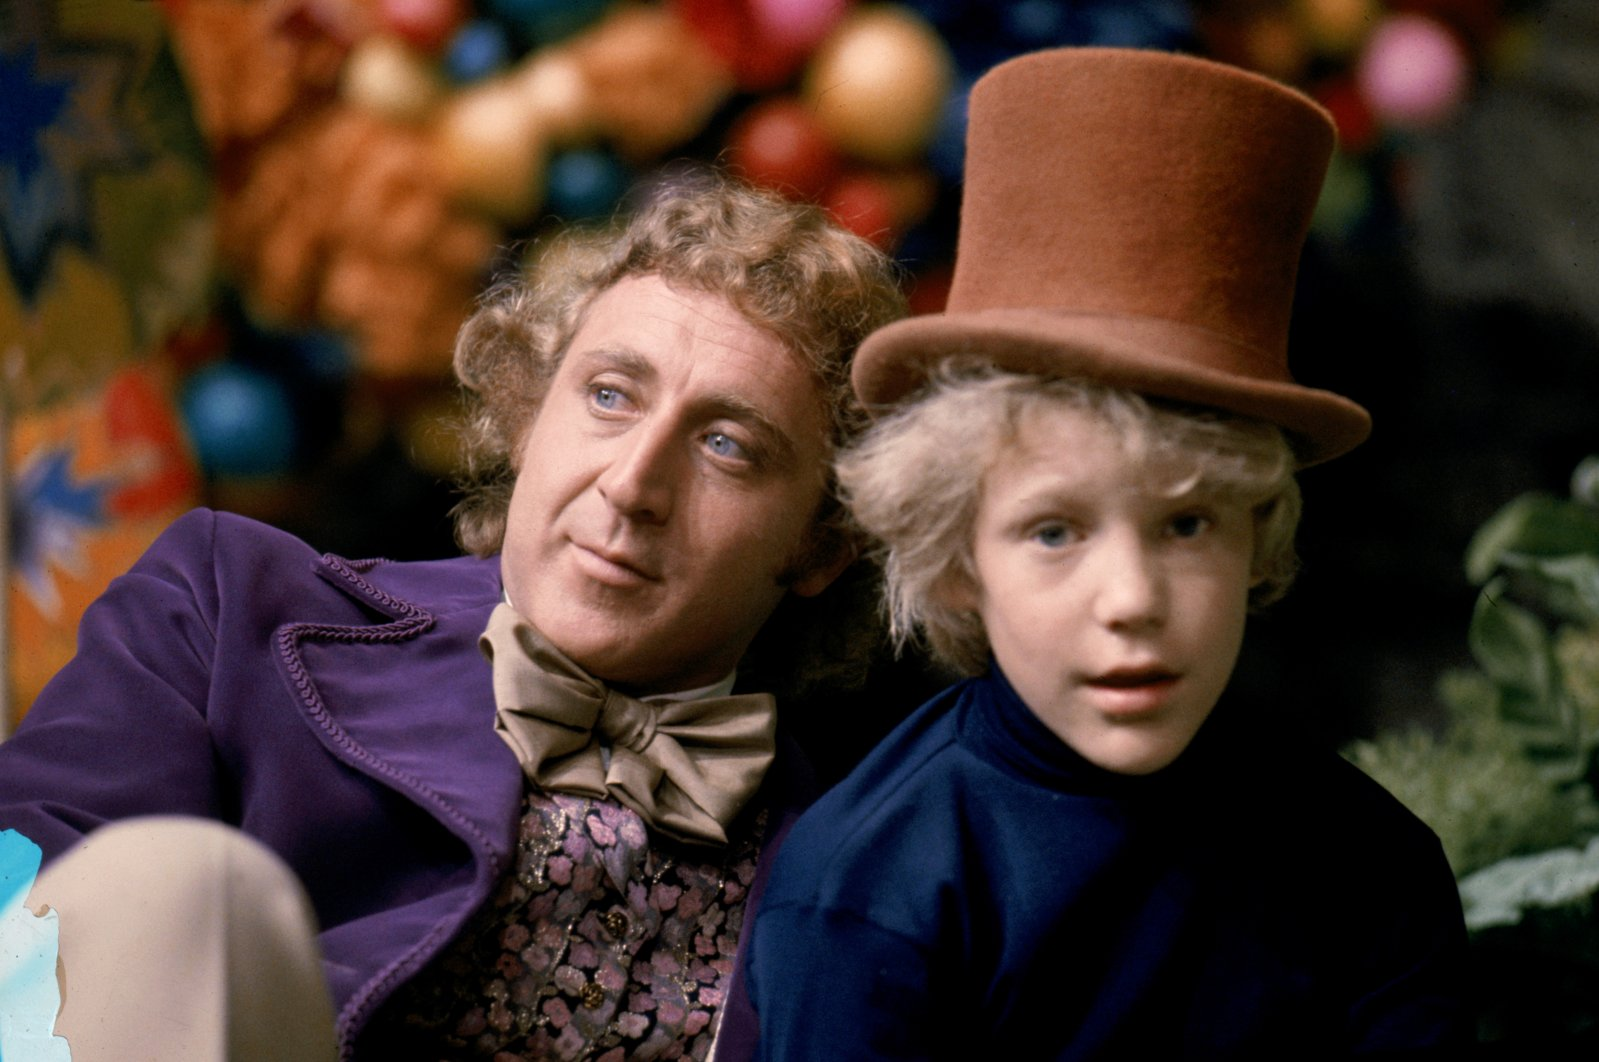 """Actor Gene Wilder (L) as Willy Wonka and Peter Ostrum as Charlie Bucket in the 1971 film """"Willy Wonka & the Chocolate Factory."""" (Warner Bros. via Reuters)"""